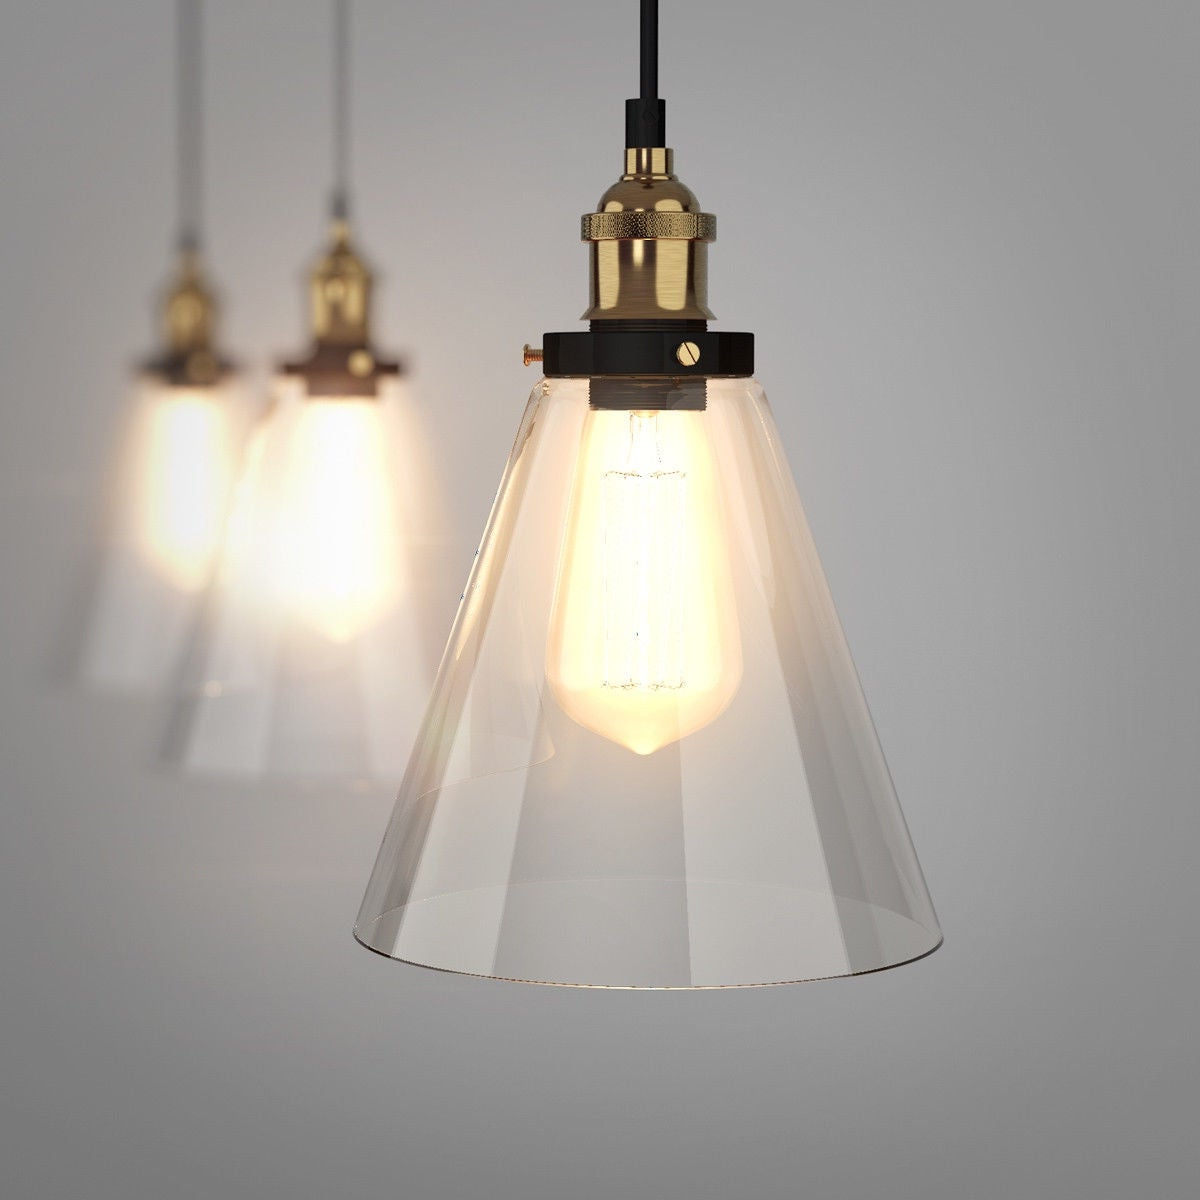 Most Current Gymax Vintage Style Industrial Edison Ceiling Pendant Glass Hanging Light 1 Light Bulb – As Pic Inside Vintage Edison 1 Light Bowl Pendants (View 7 of 20)